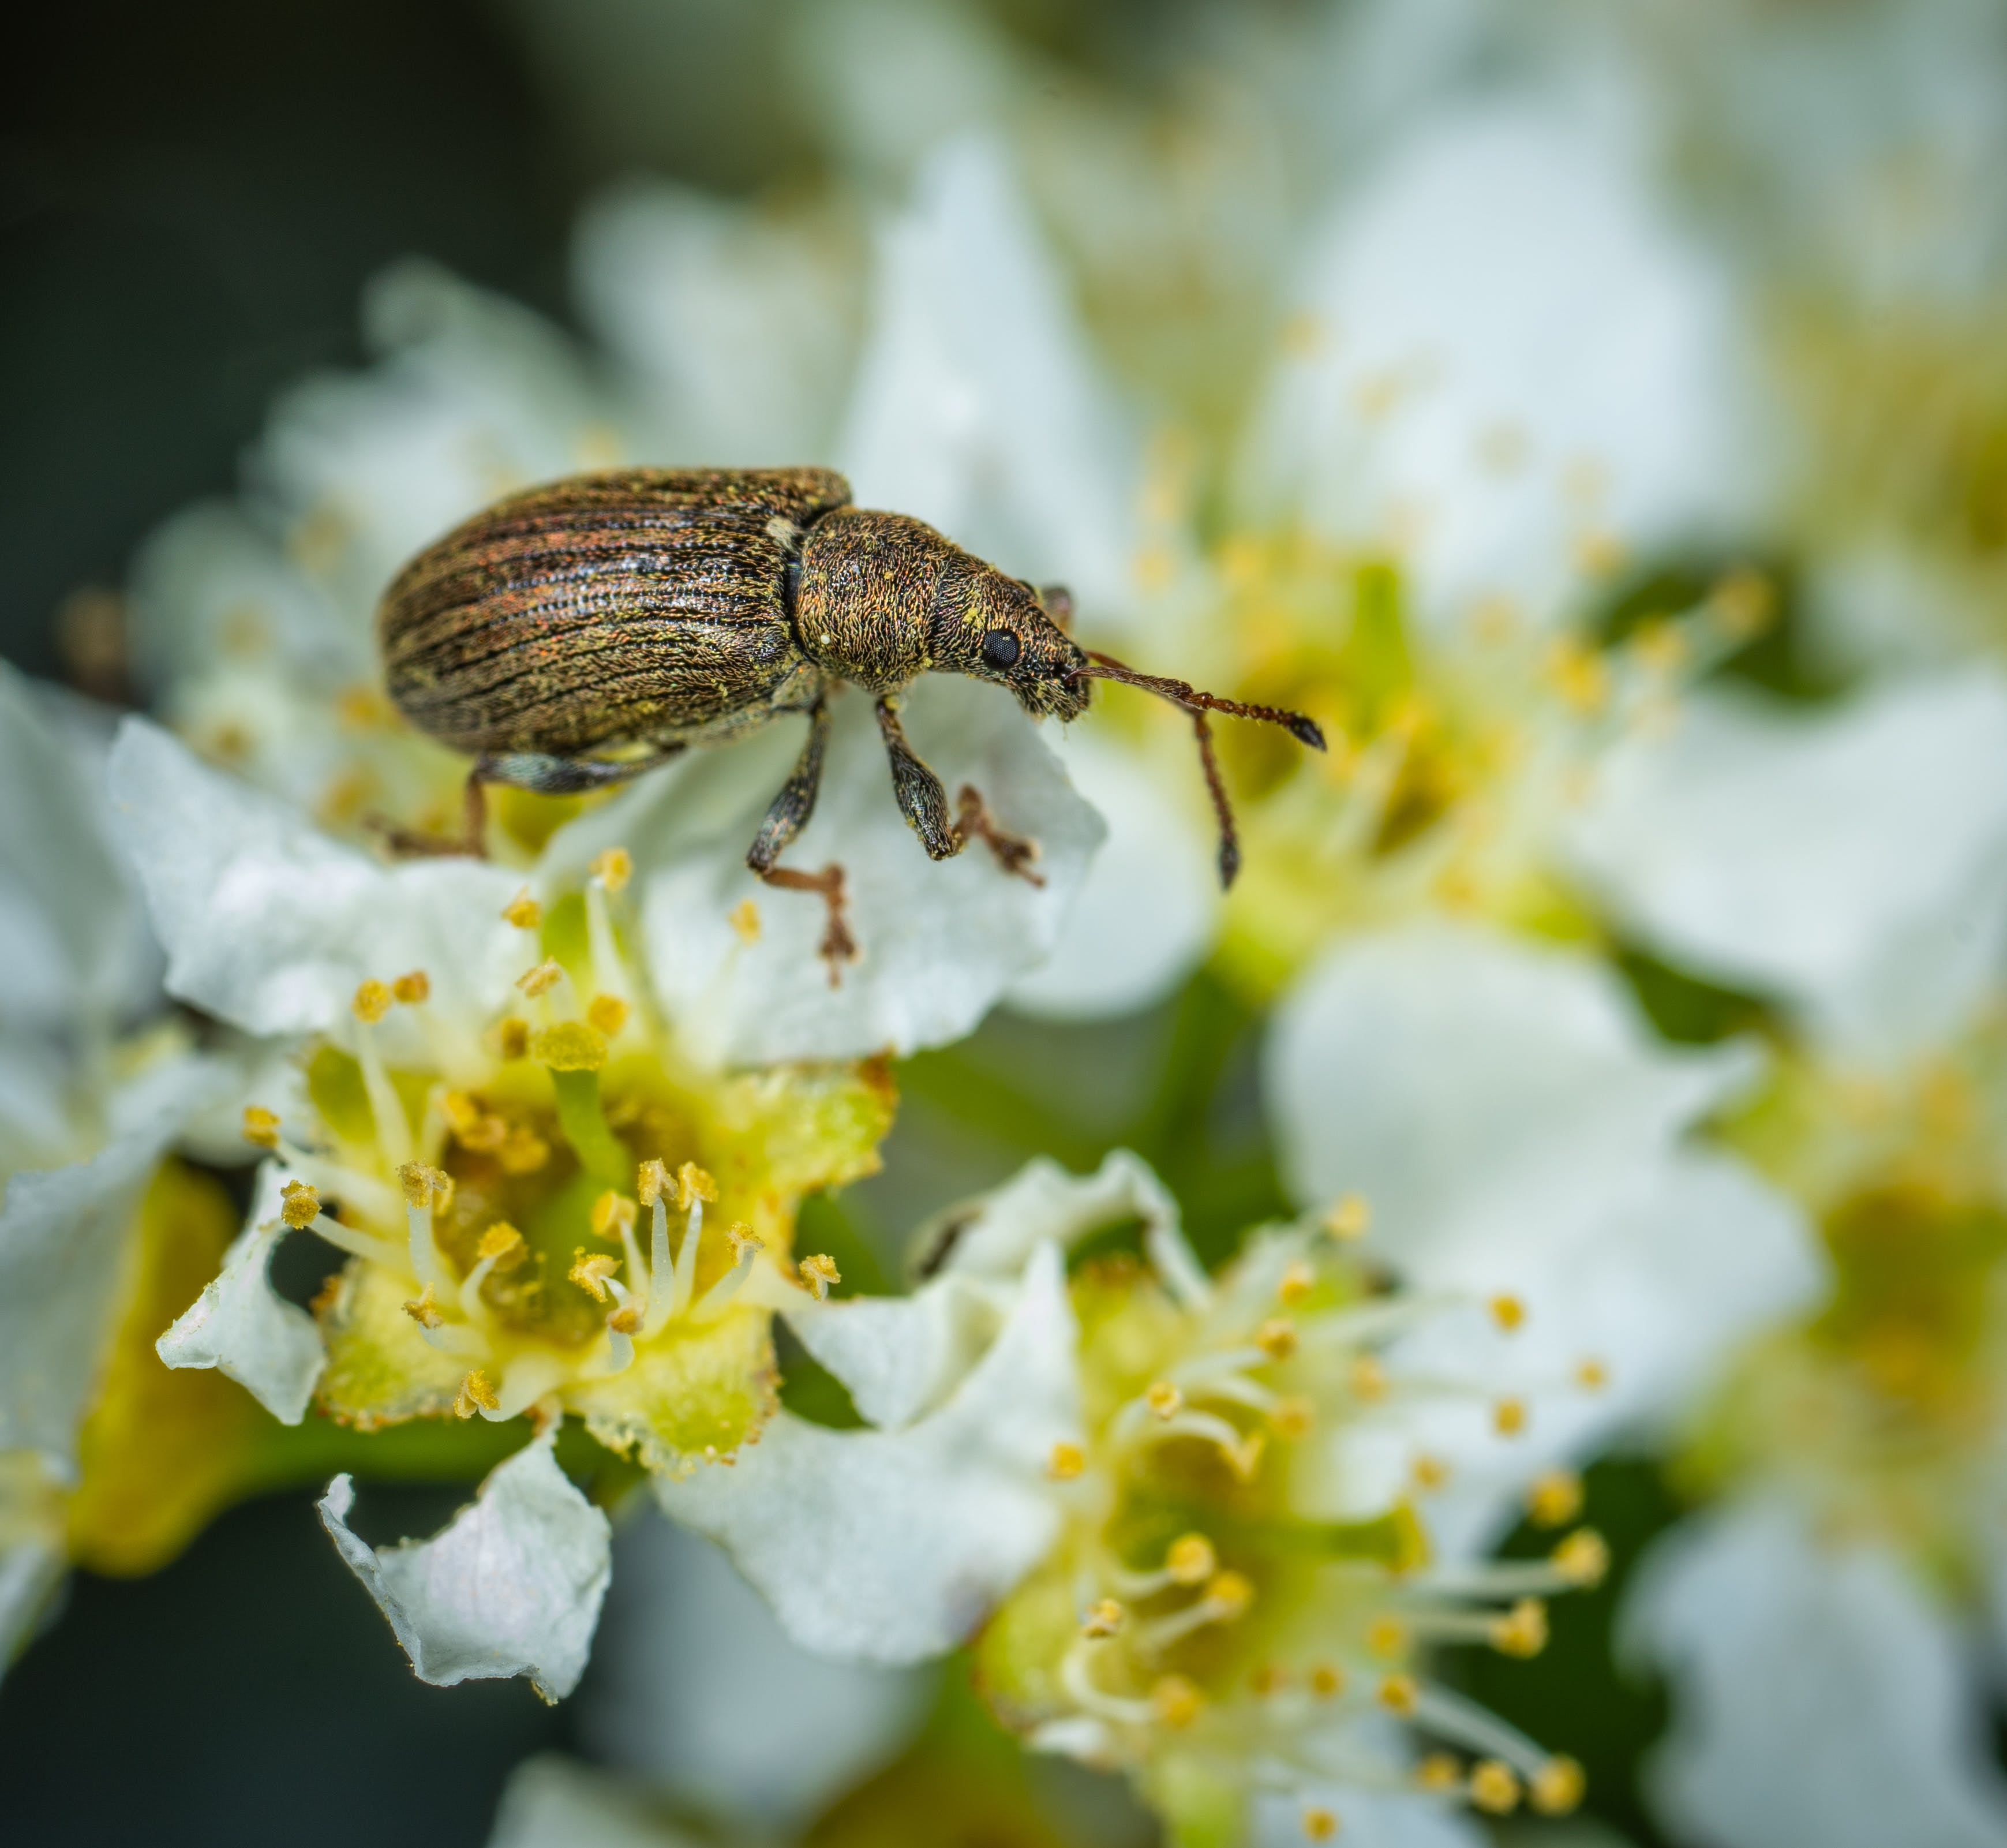 Brown Weevil Perched on White Flower